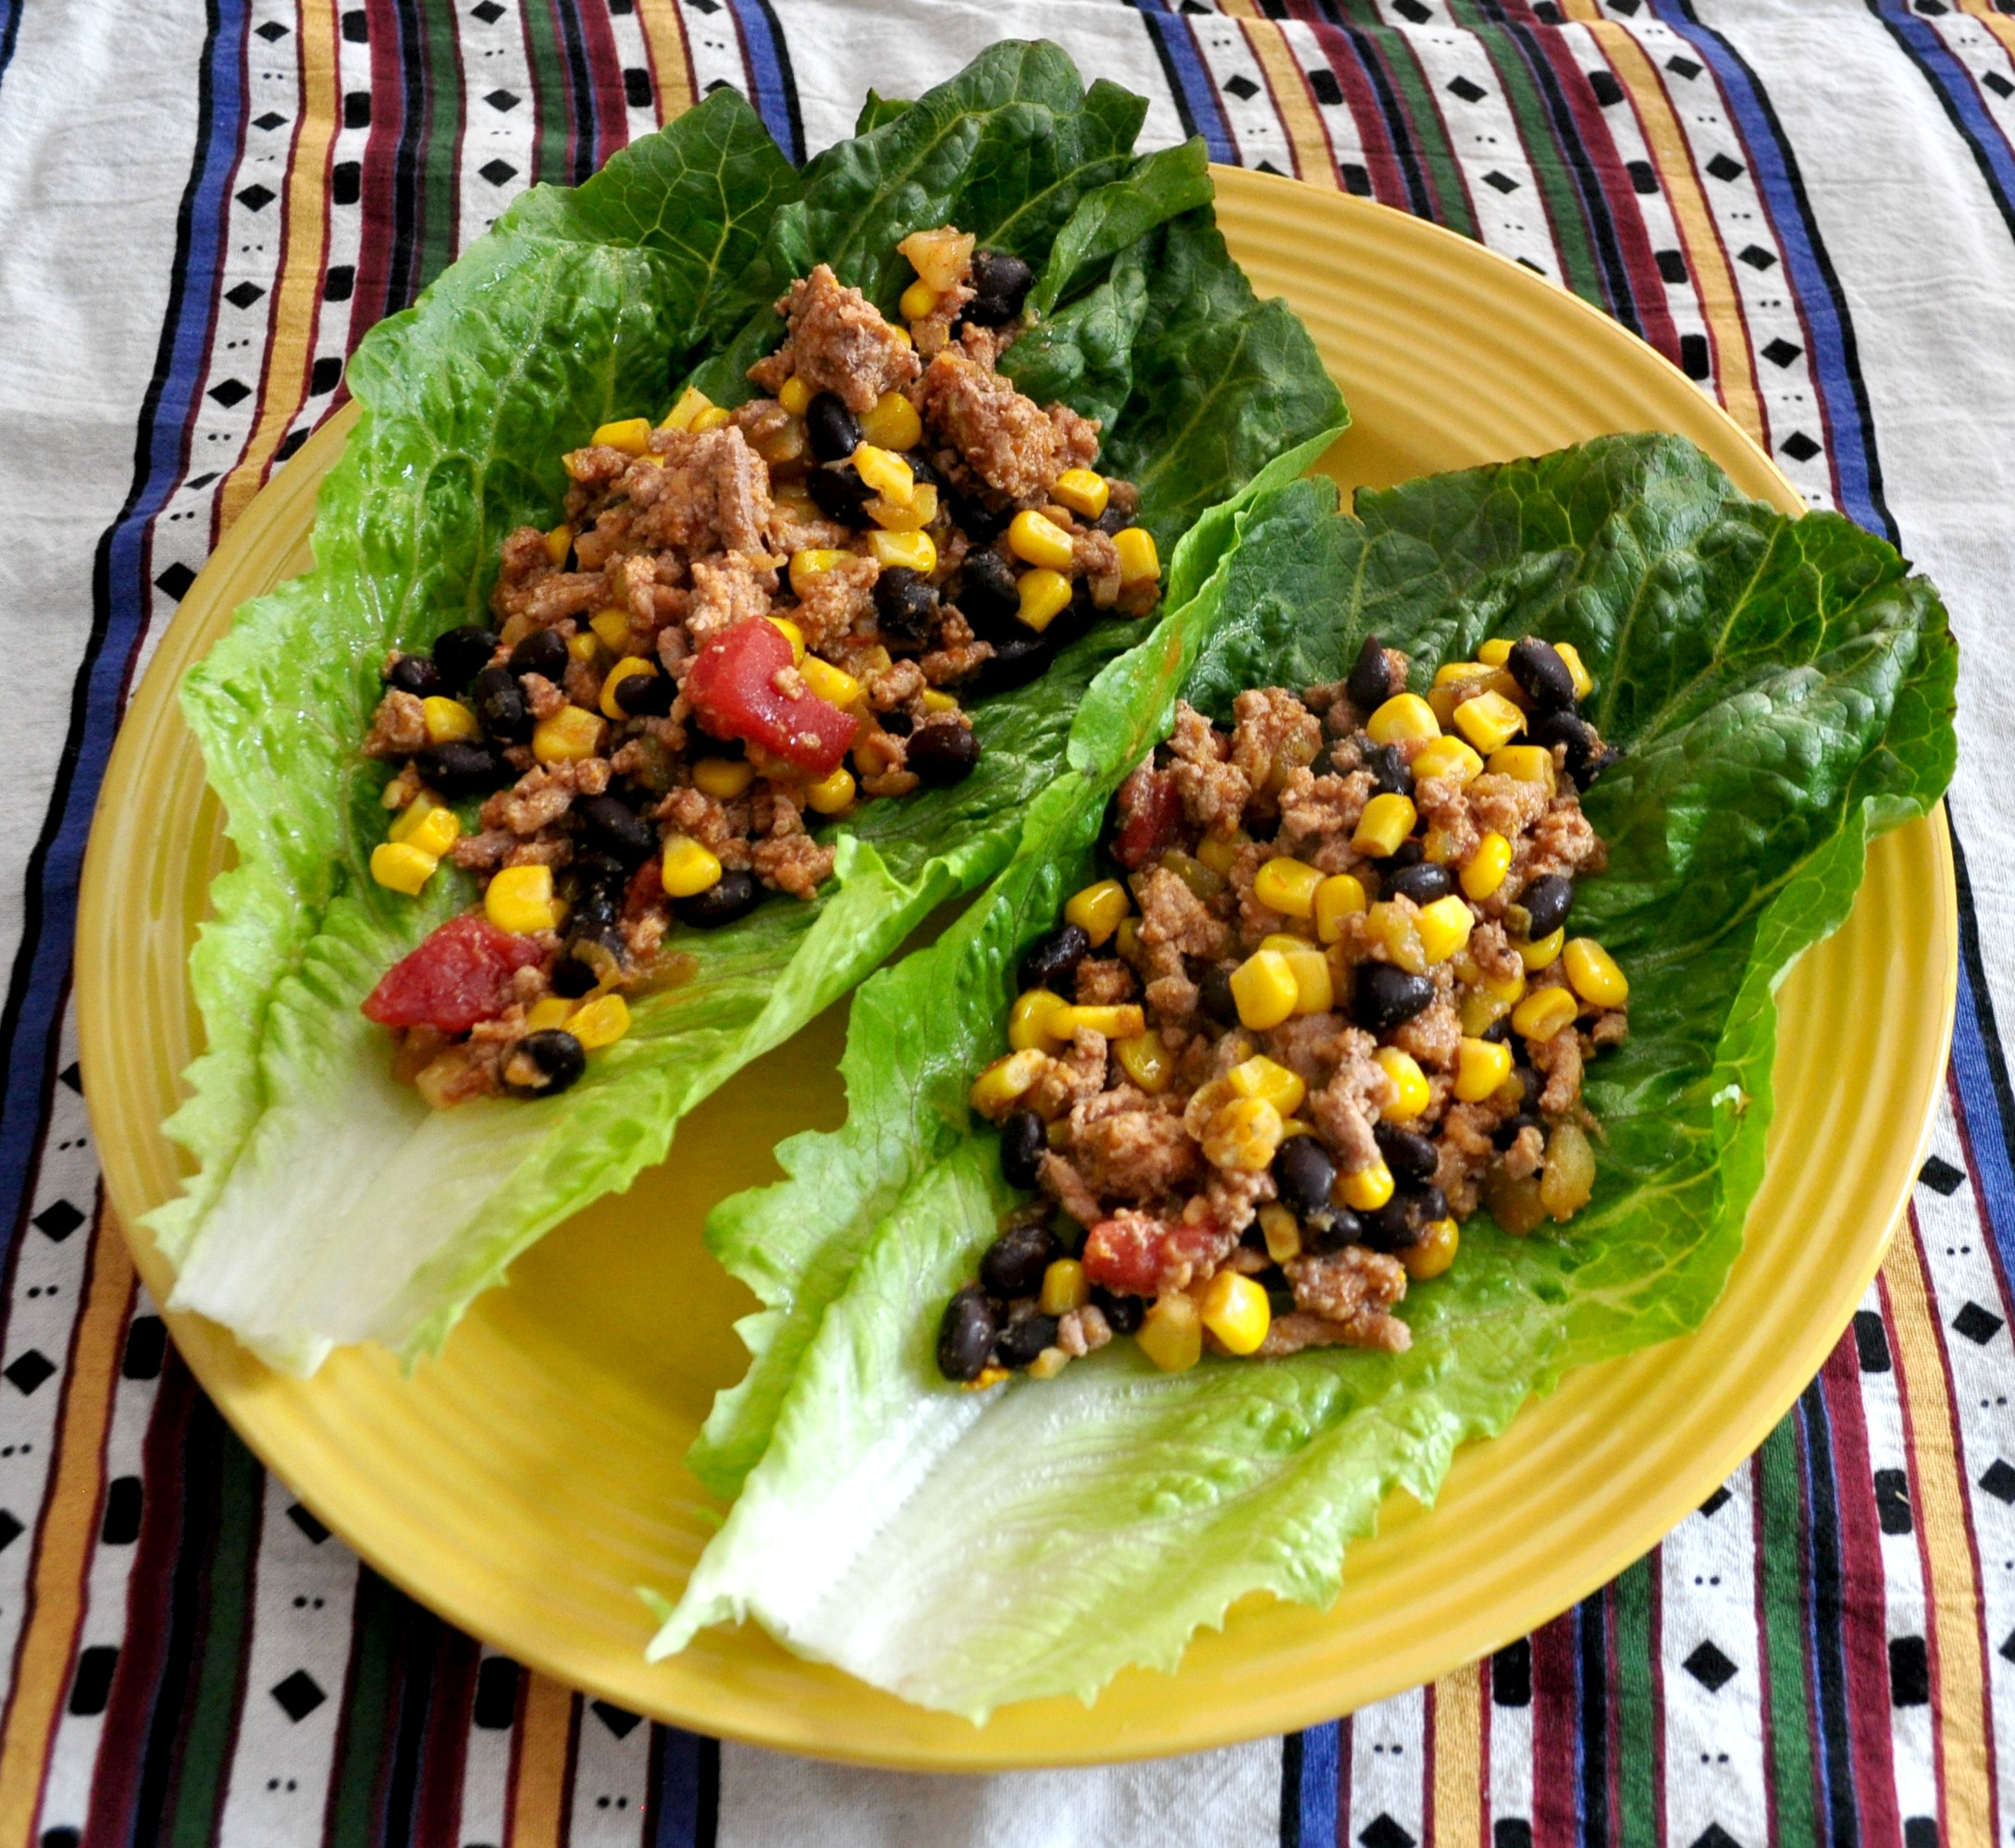 Corn, black beans, diced tomatoes, ground turkey, and taco seasonings are simmered and served wrapped up in large leaves of romaine.